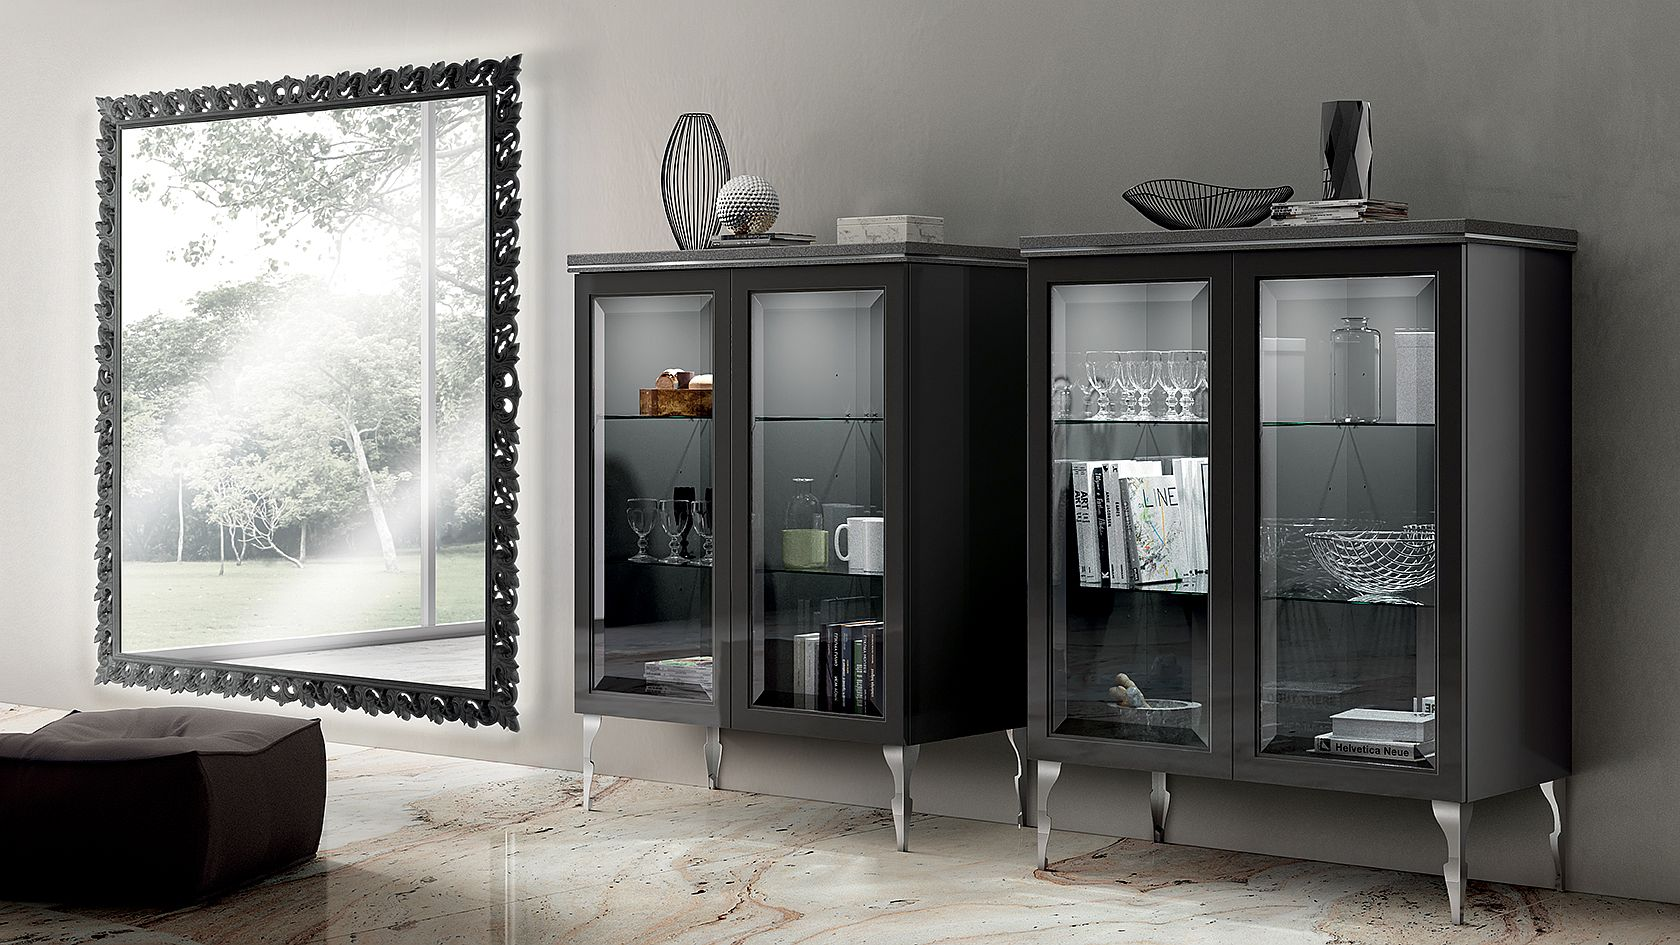 Glass door cabinets allow you to create a stunning display in the living room full of majestic elegance